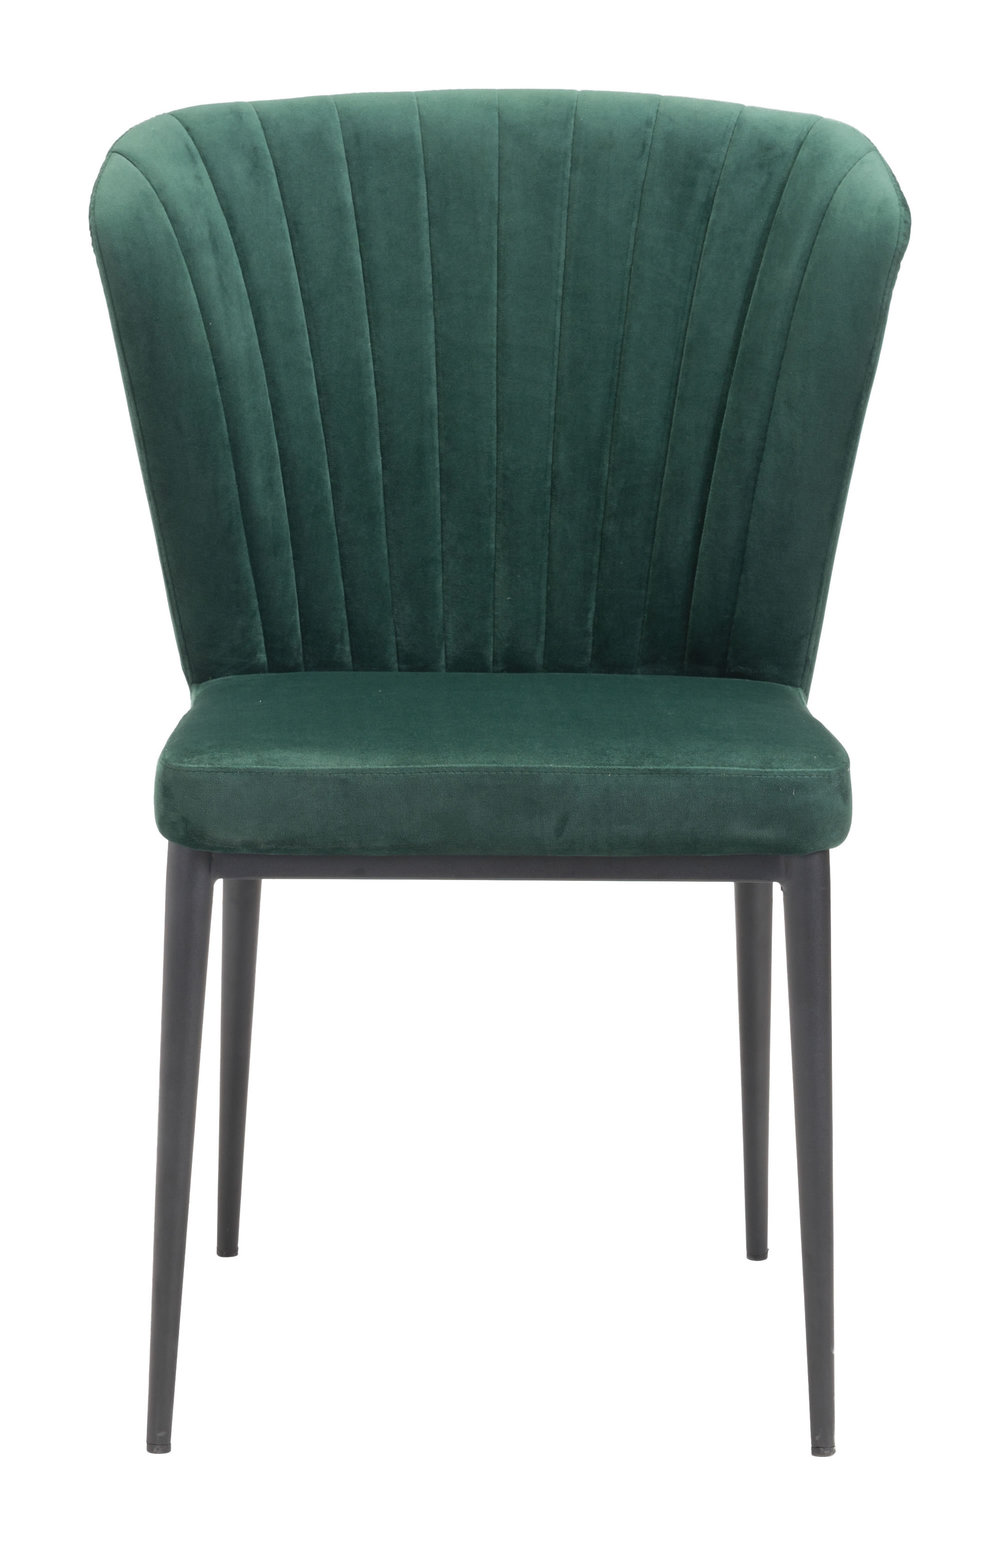 Zuo Modern Contemporary - Tolivere Dining Chair - Set of 2 - Green